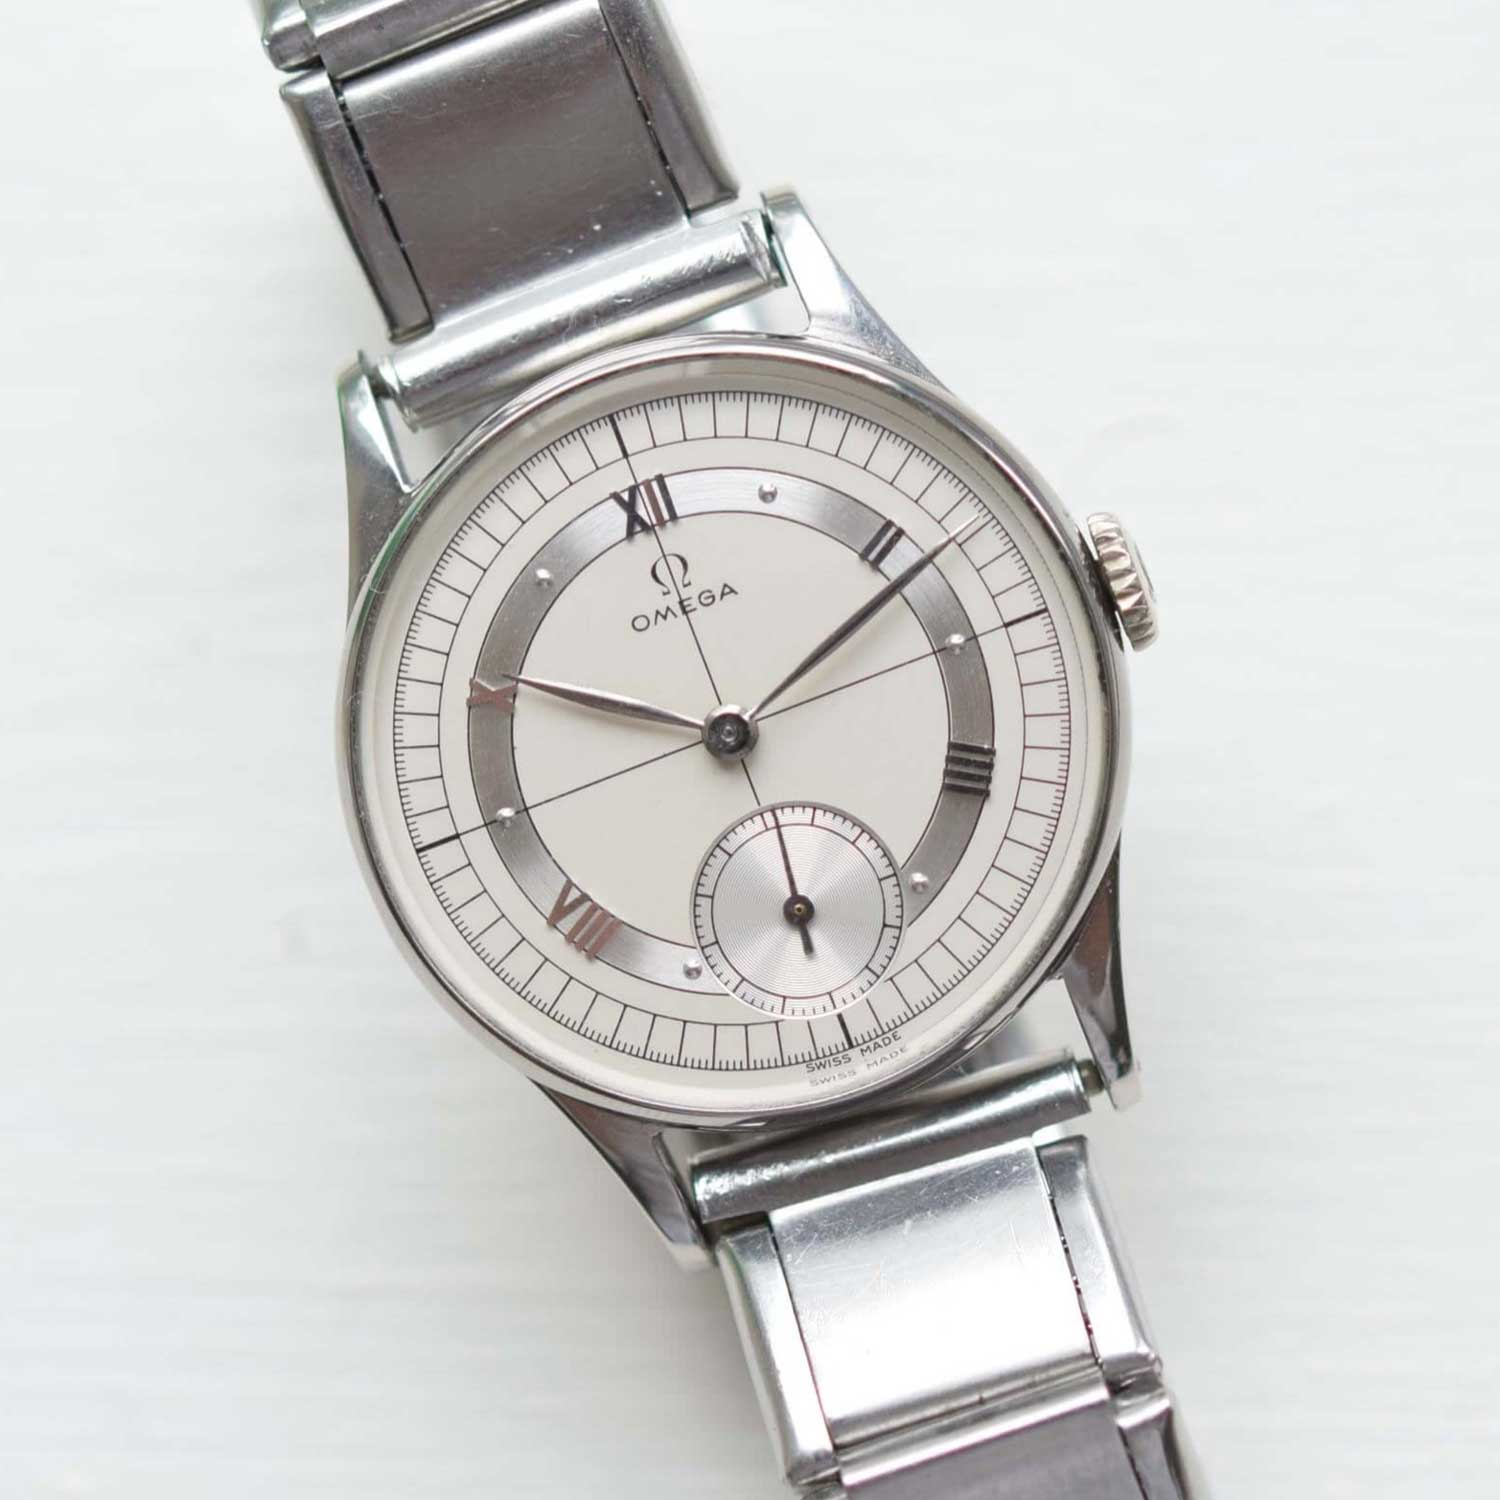 """1940's Omega """"Sector"""" Wristwatch. Image: Vision Vintage Watches"""